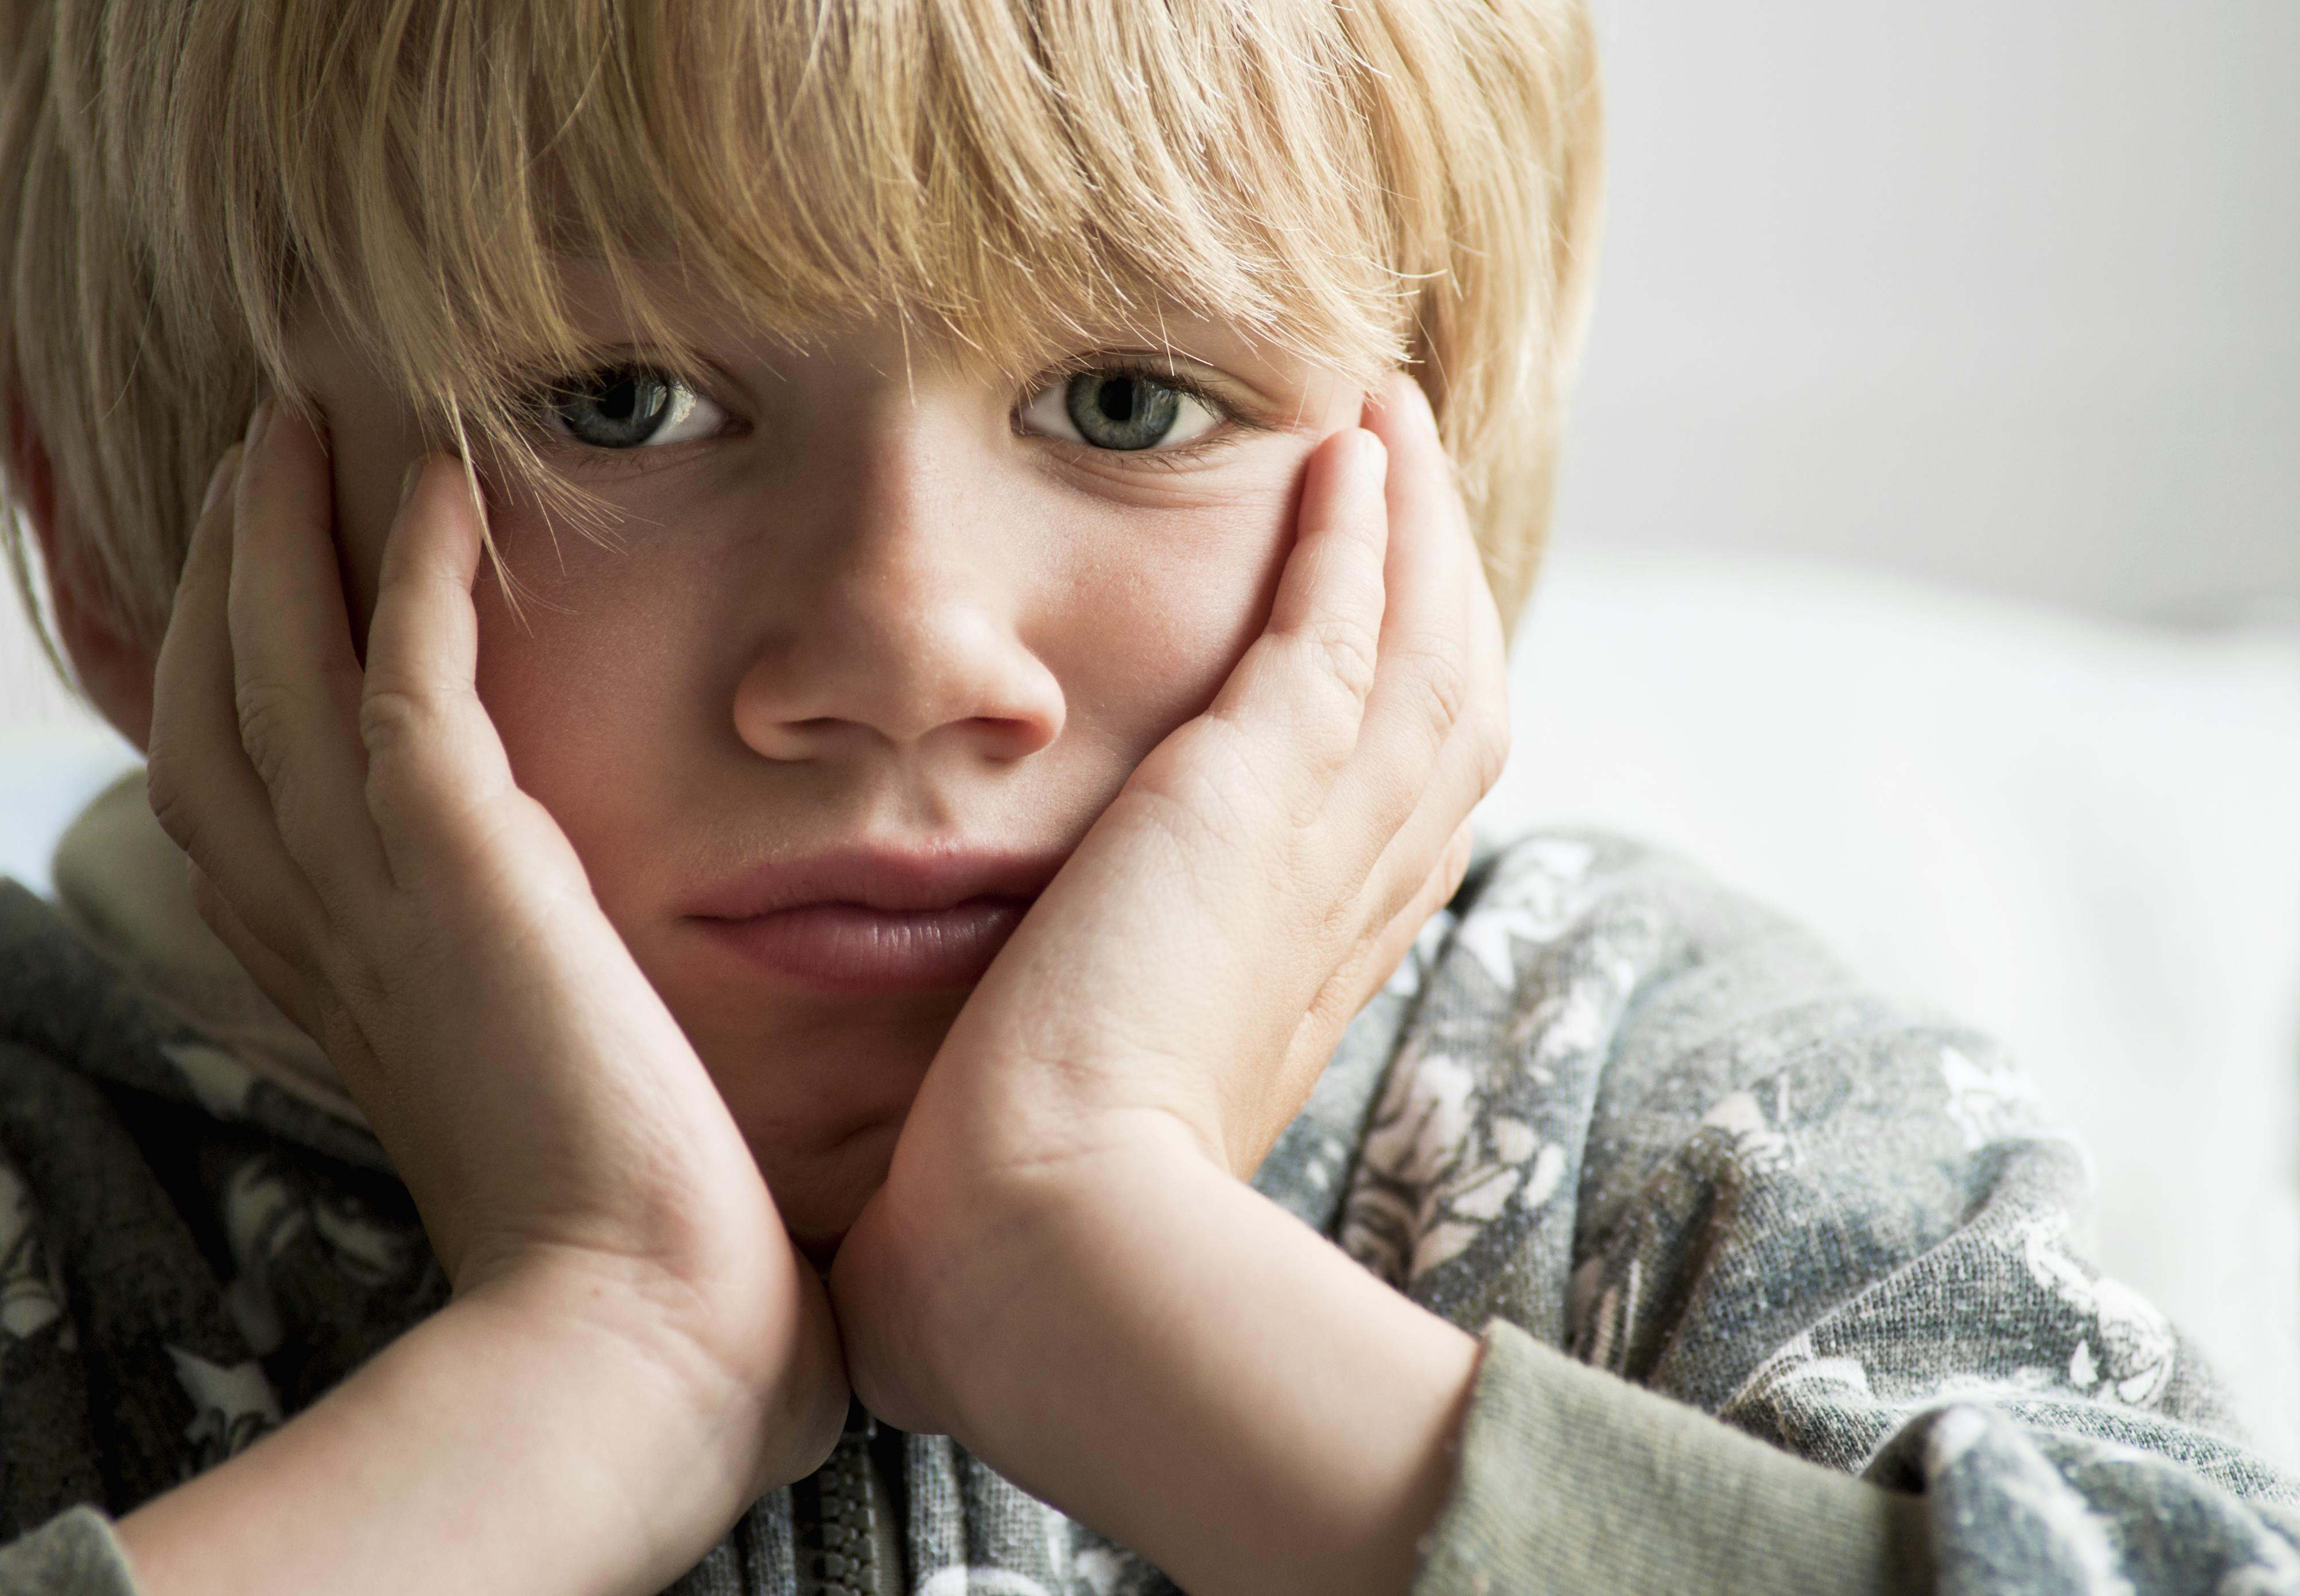 10,000 Greater Manchester children are unhappy says charity ...